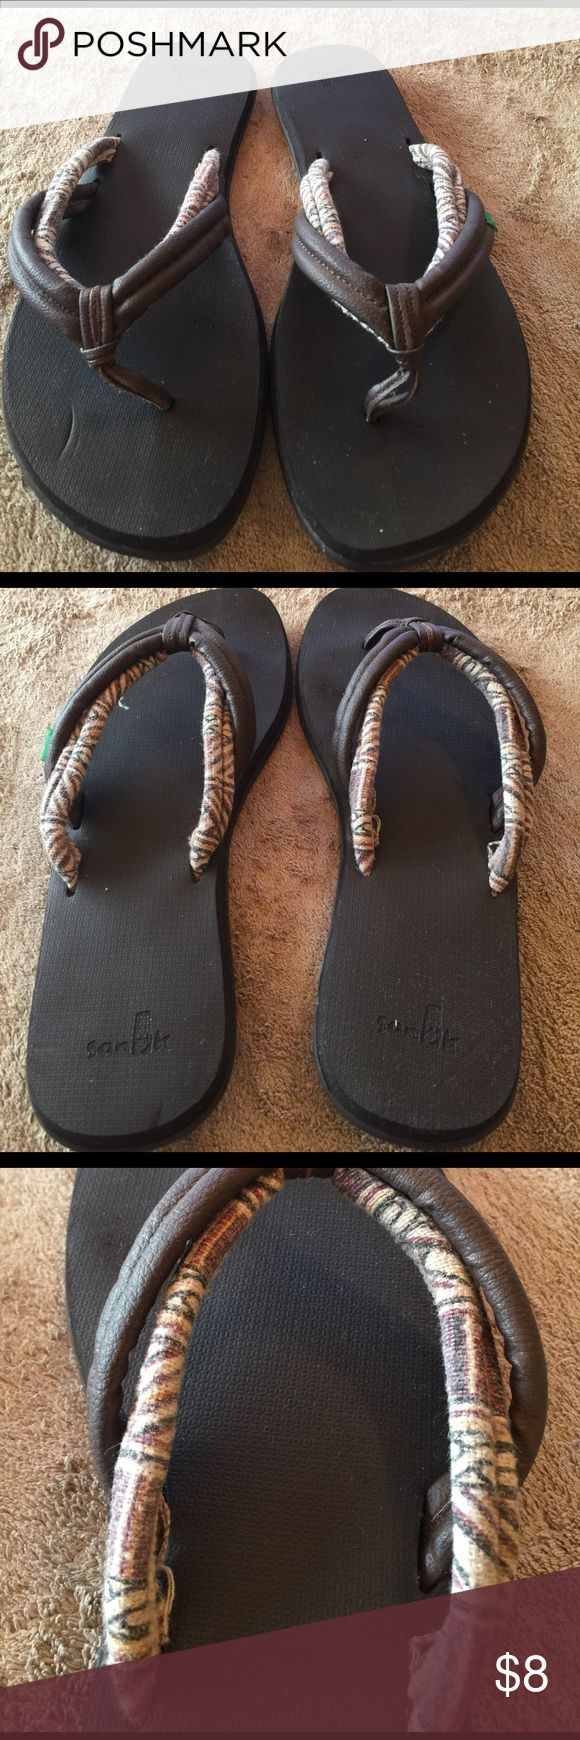 Sanuk brown/tribal strap slippers The best slipper for comfort wear, you cannot beat Sanuks❣Worn a couple of times. True 7. Sanuk Shoes Slippers